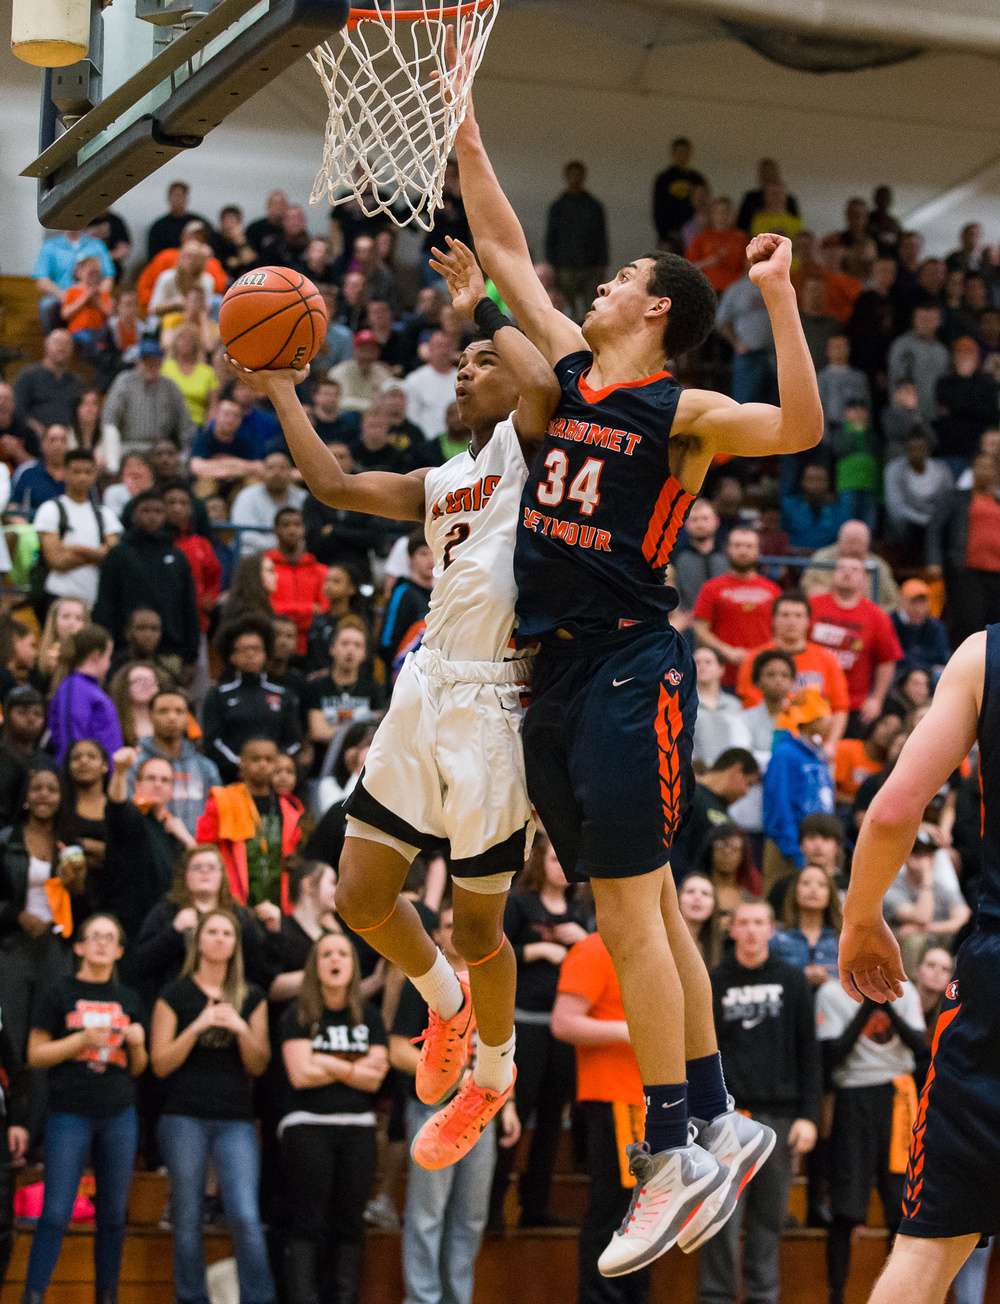 Lanphier's Cardell McGee (2) draws the foul as Mahomet-Seymour's Christian Romine (34) tries to block his shot in the second half during the Class 3A Champaign Centennial Sectional title game, Friday, March 13, 2015, in Champaign, Ill. Justin L. Fowler/The State Journal-Register